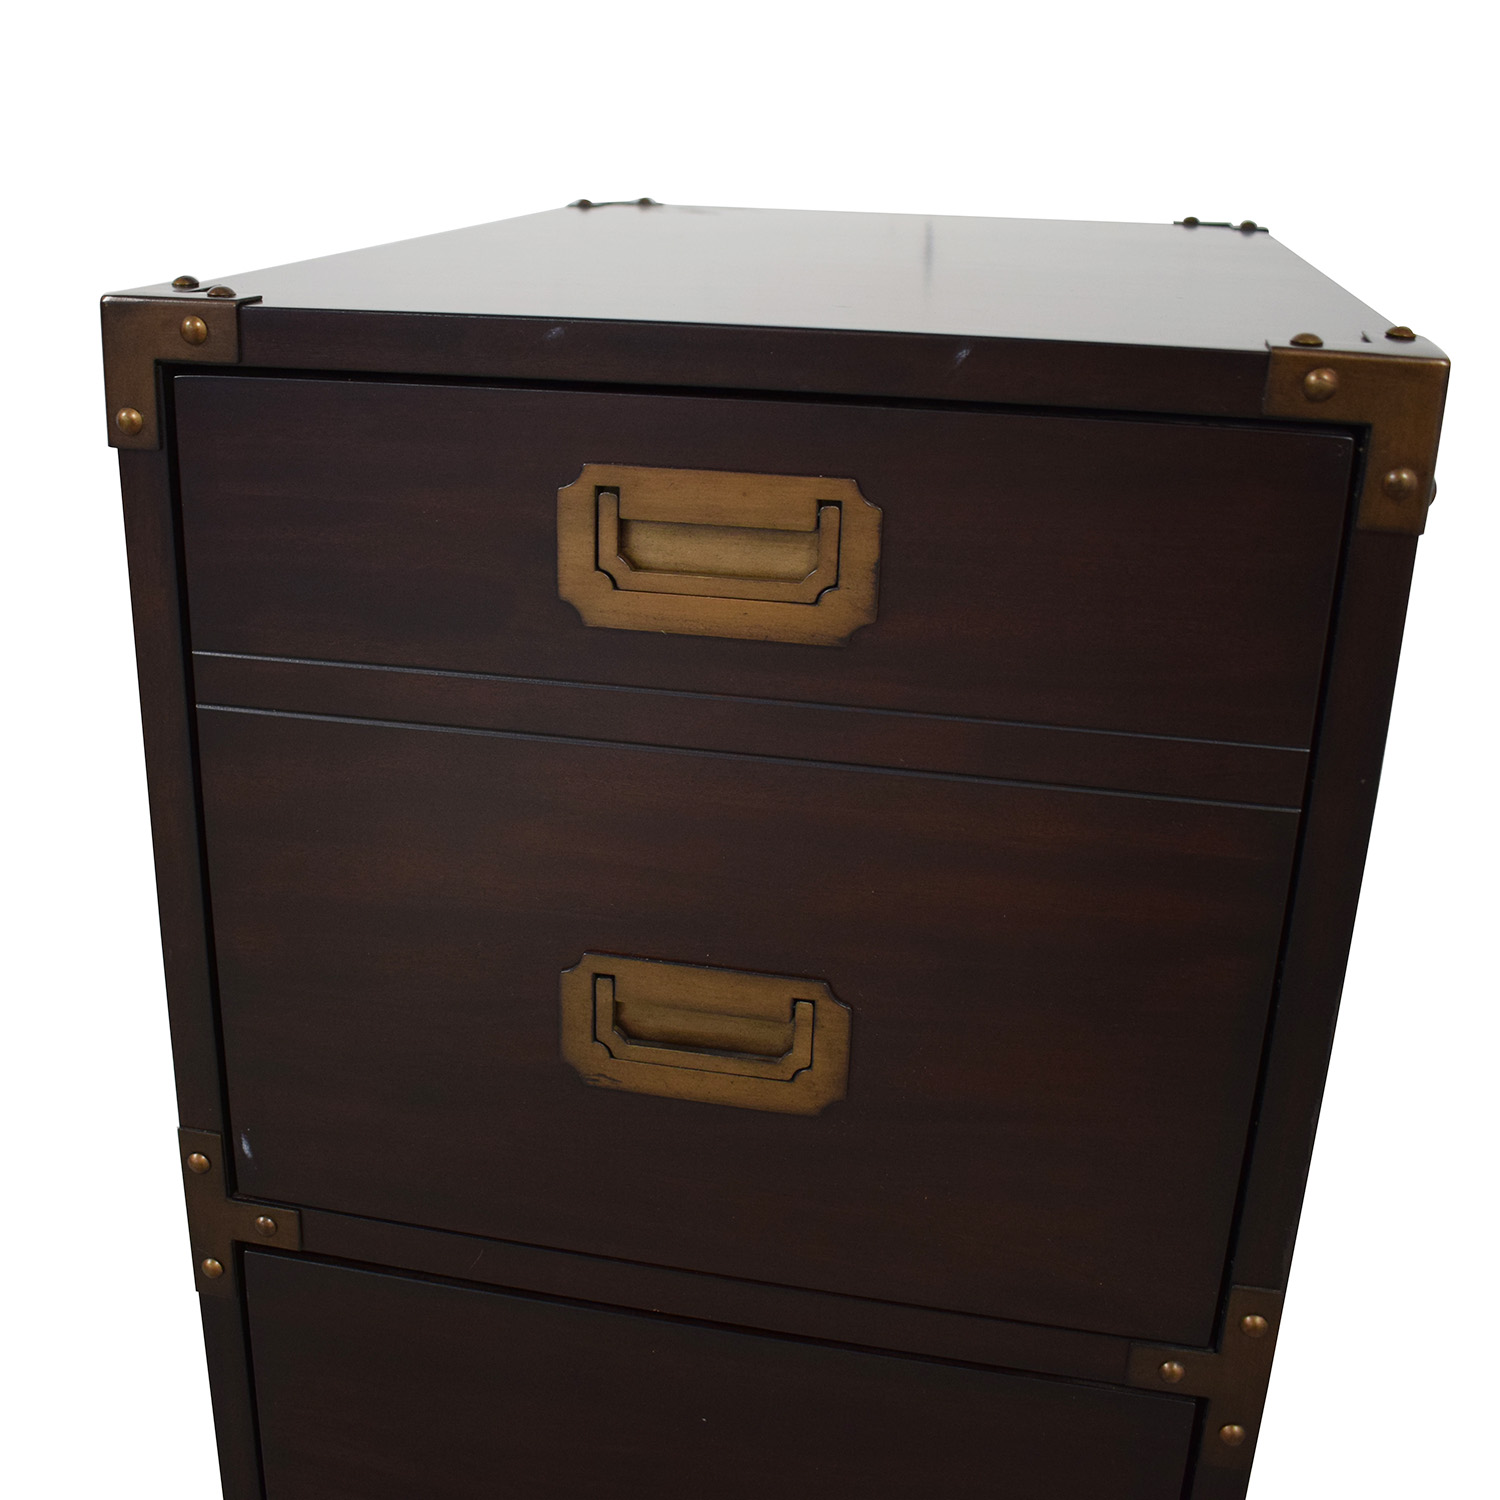 File Cabinet with Metal Accents / Filing & Bins